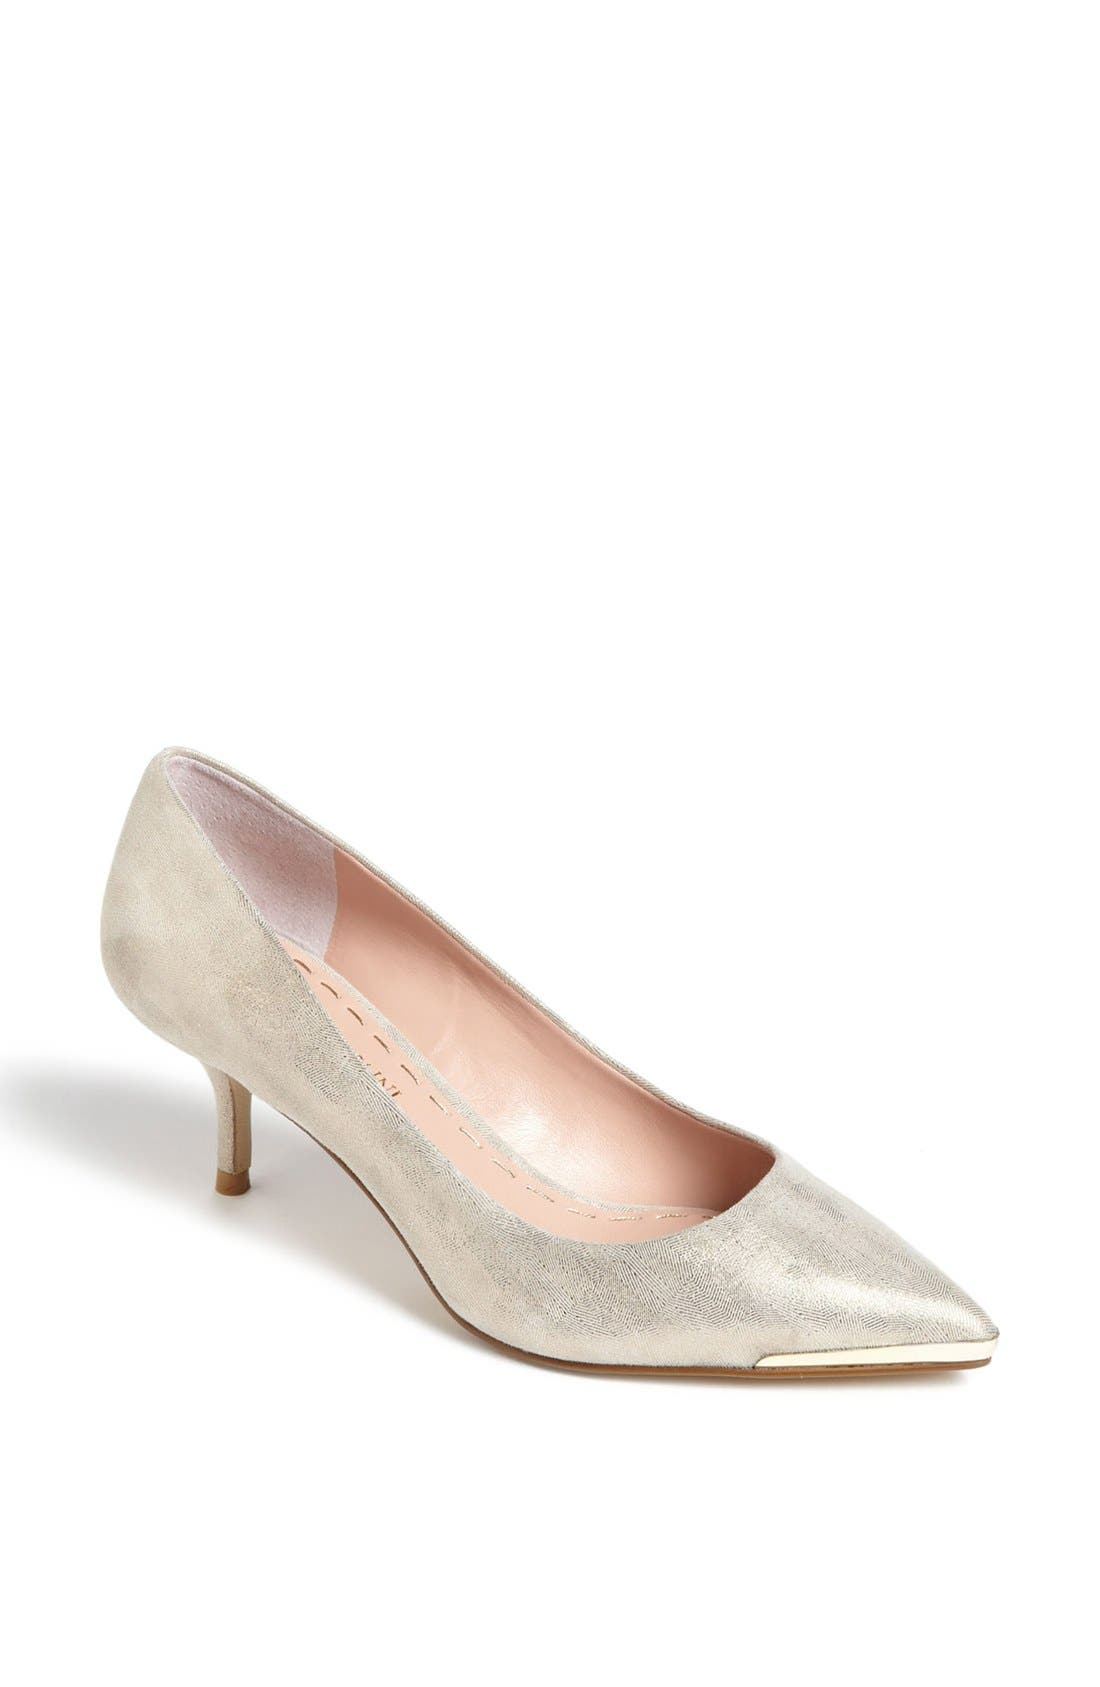 Alternate Image 1 Selected - Enzo Angiolini 'Graysn' Pump